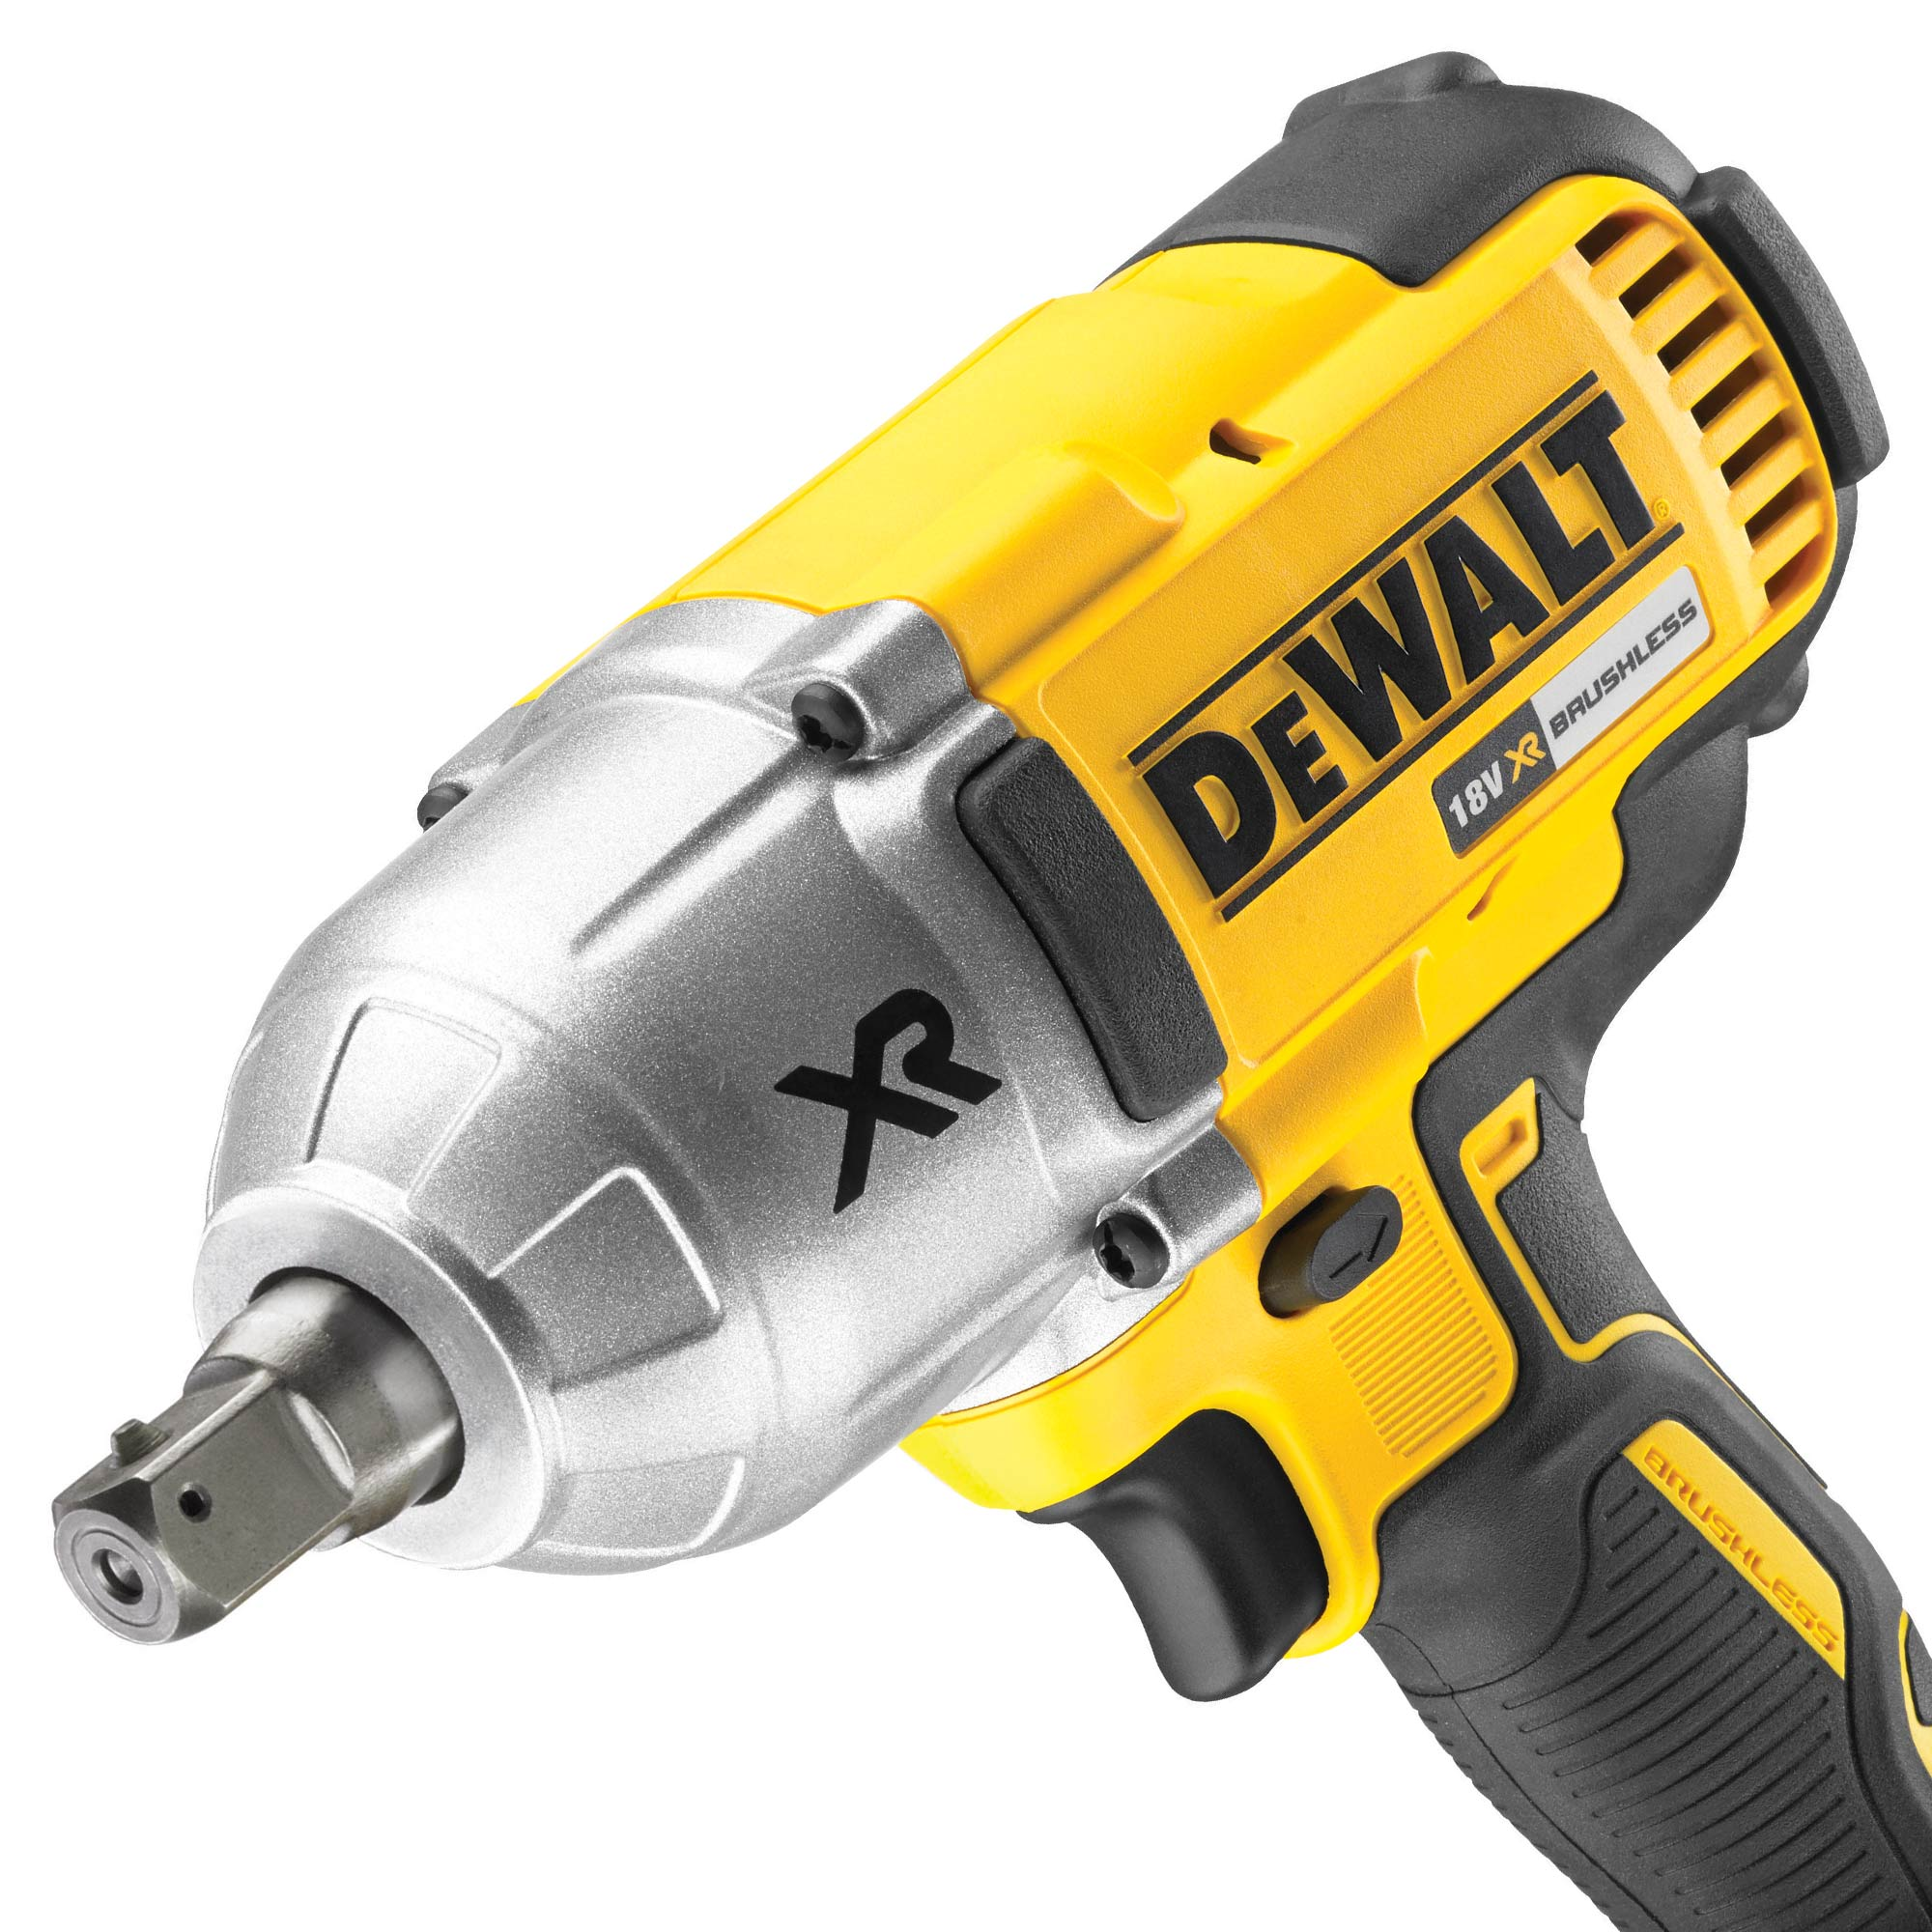 dewalt dcf899p2 dewalt 18v xr li ion brushless impact wrench 5 0ah. Black Bedroom Furniture Sets. Home Design Ideas